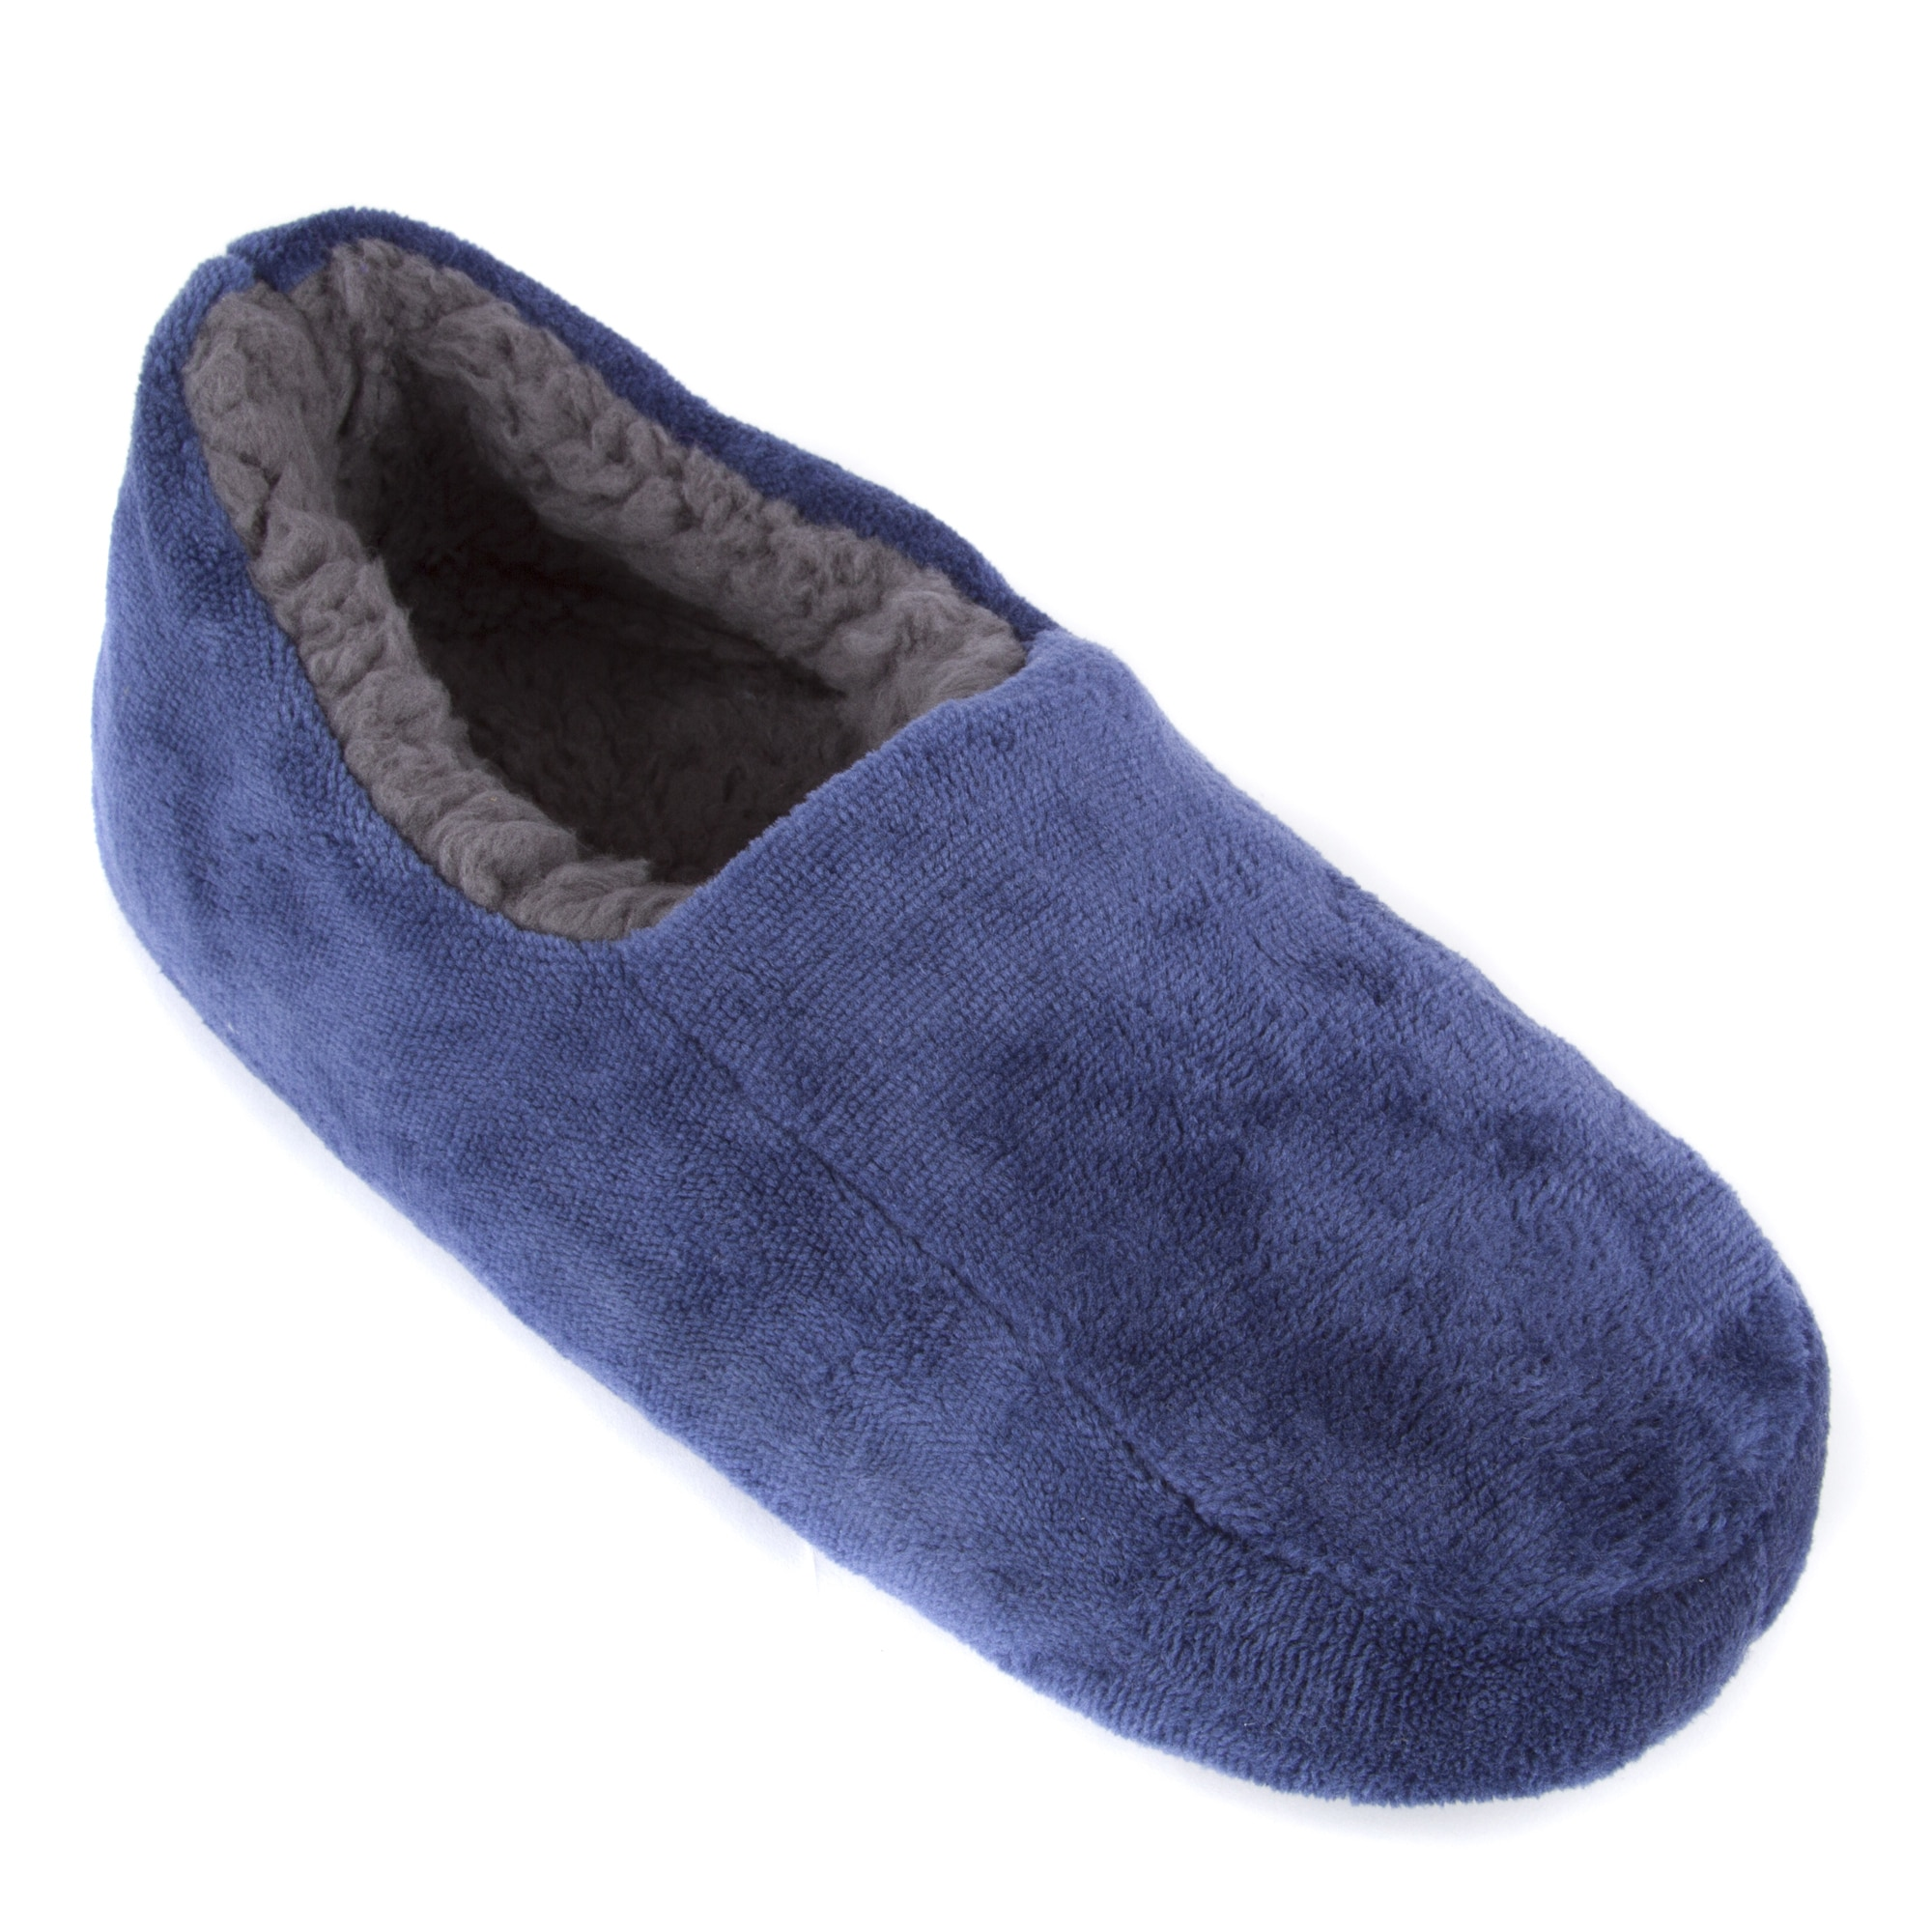 6f6dce7657b540 Leisureland Men s Solid Color Fleece Lined Cozy Slippers